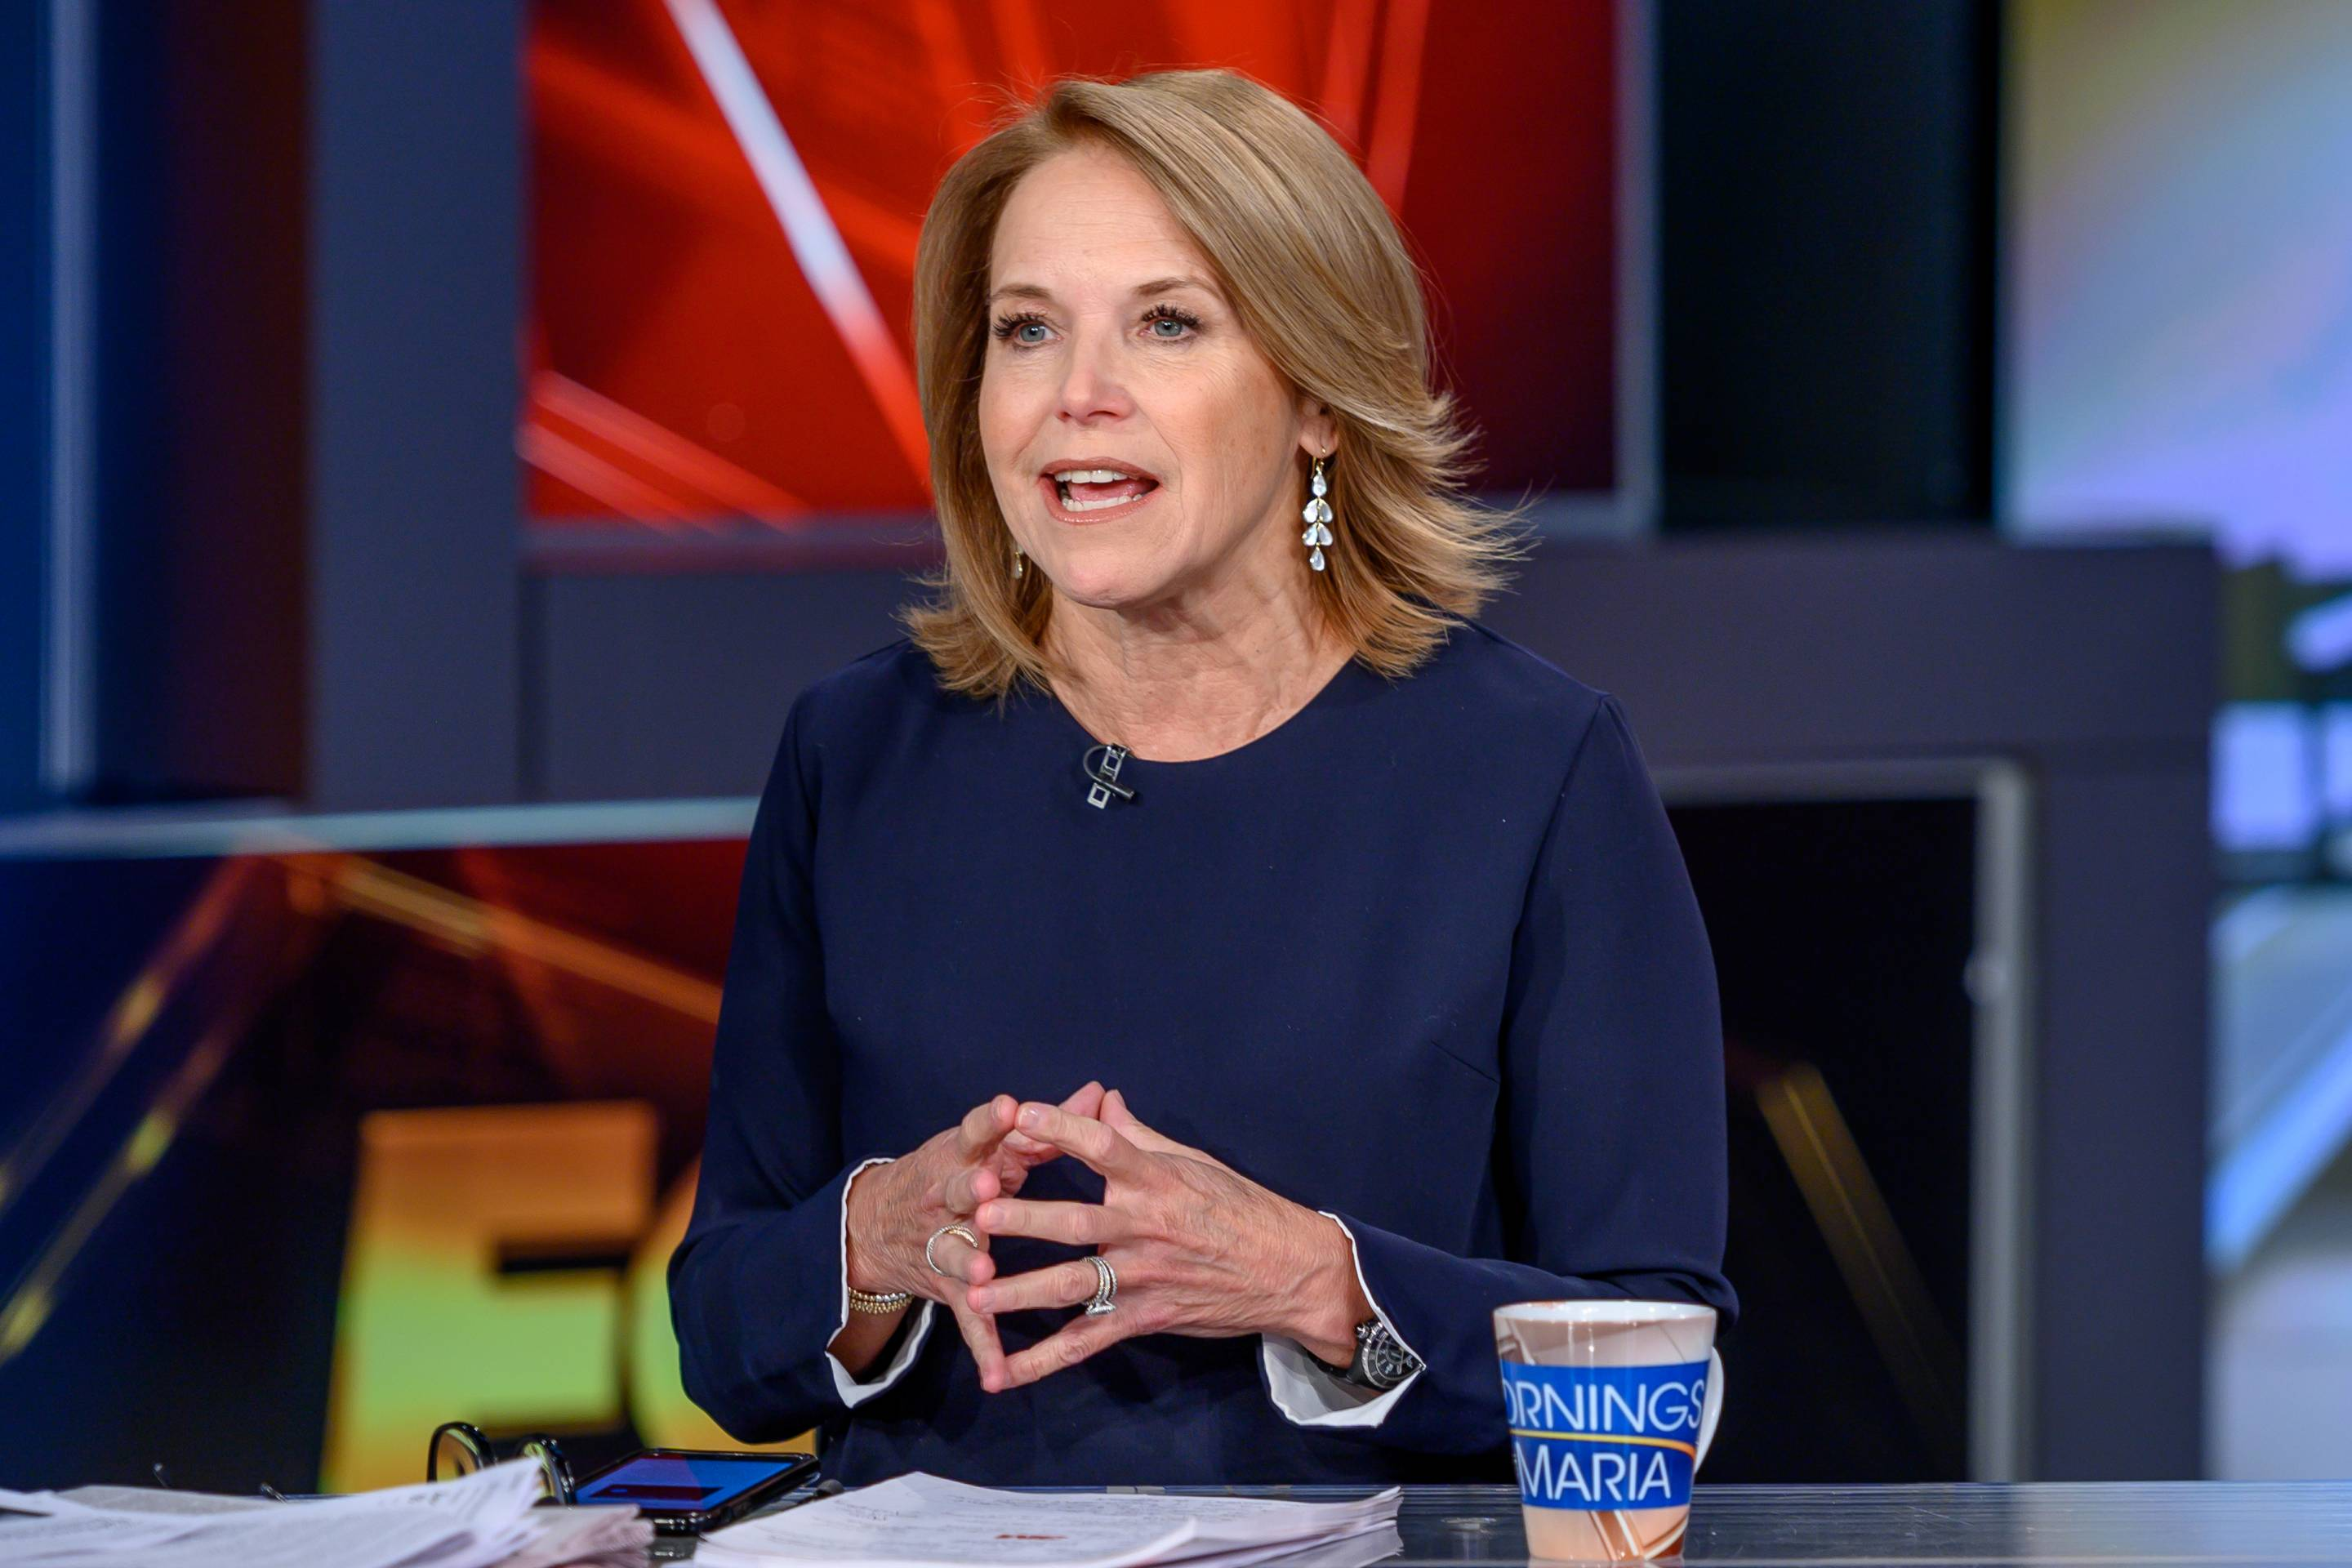 Journalist and author Katie Couric at Fox Business Network studios on March 20, 2019, in New York City.